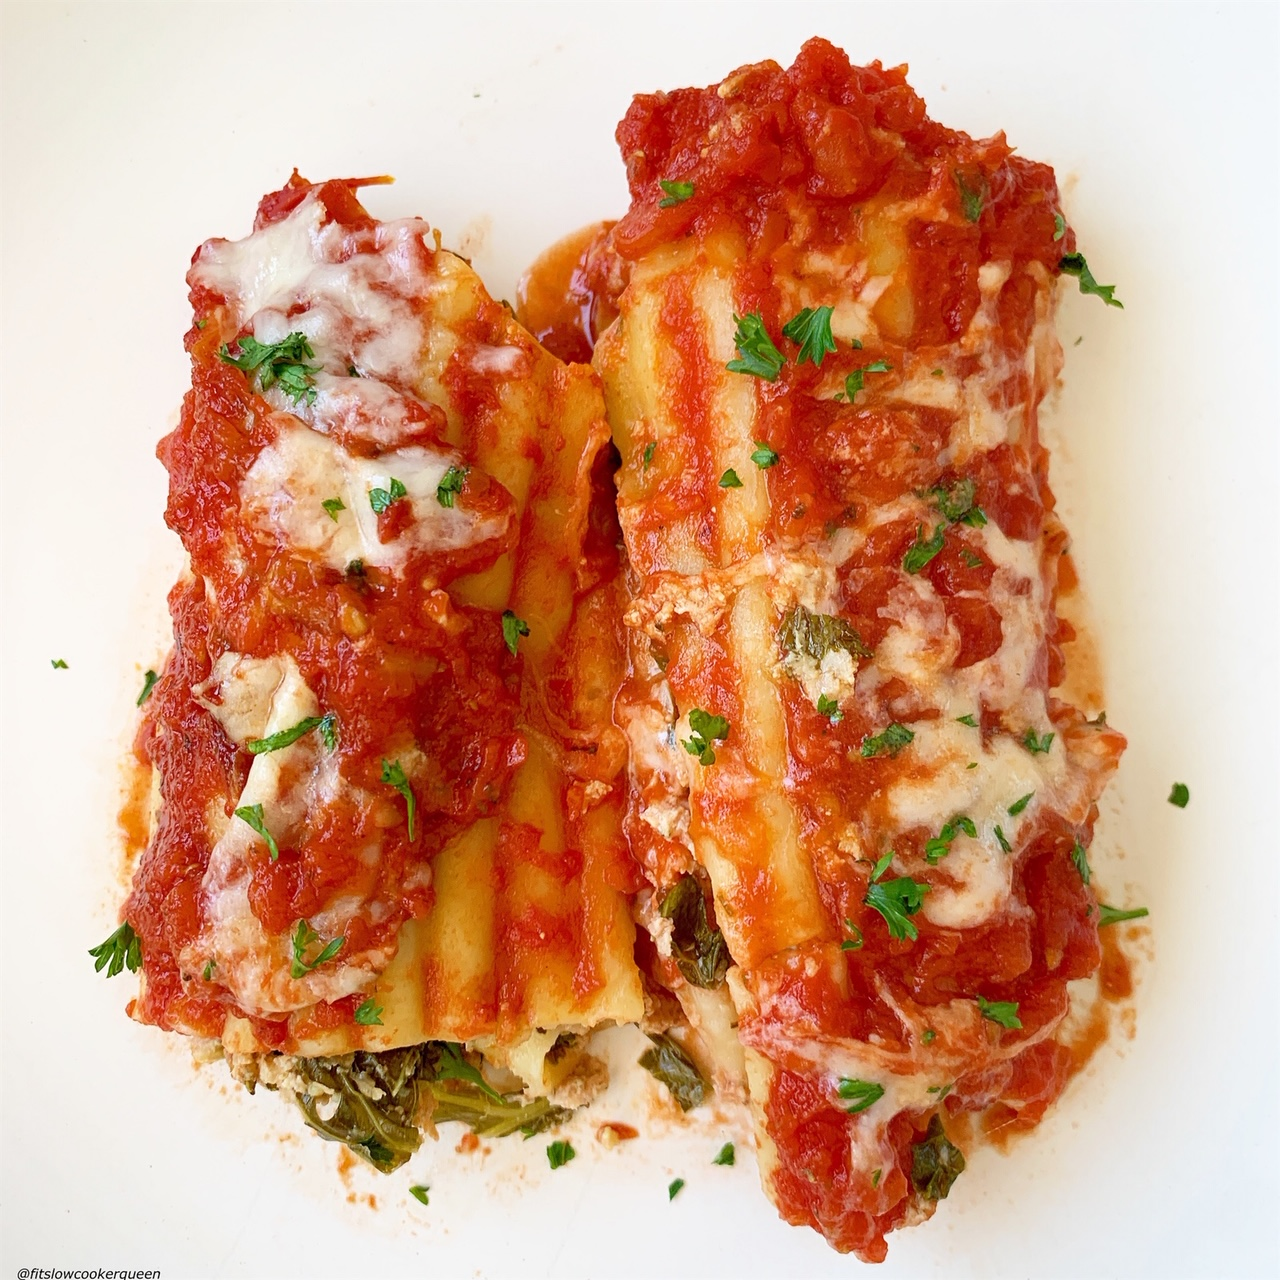 plated pic of slow cooker or instant pot stuffed manicotti